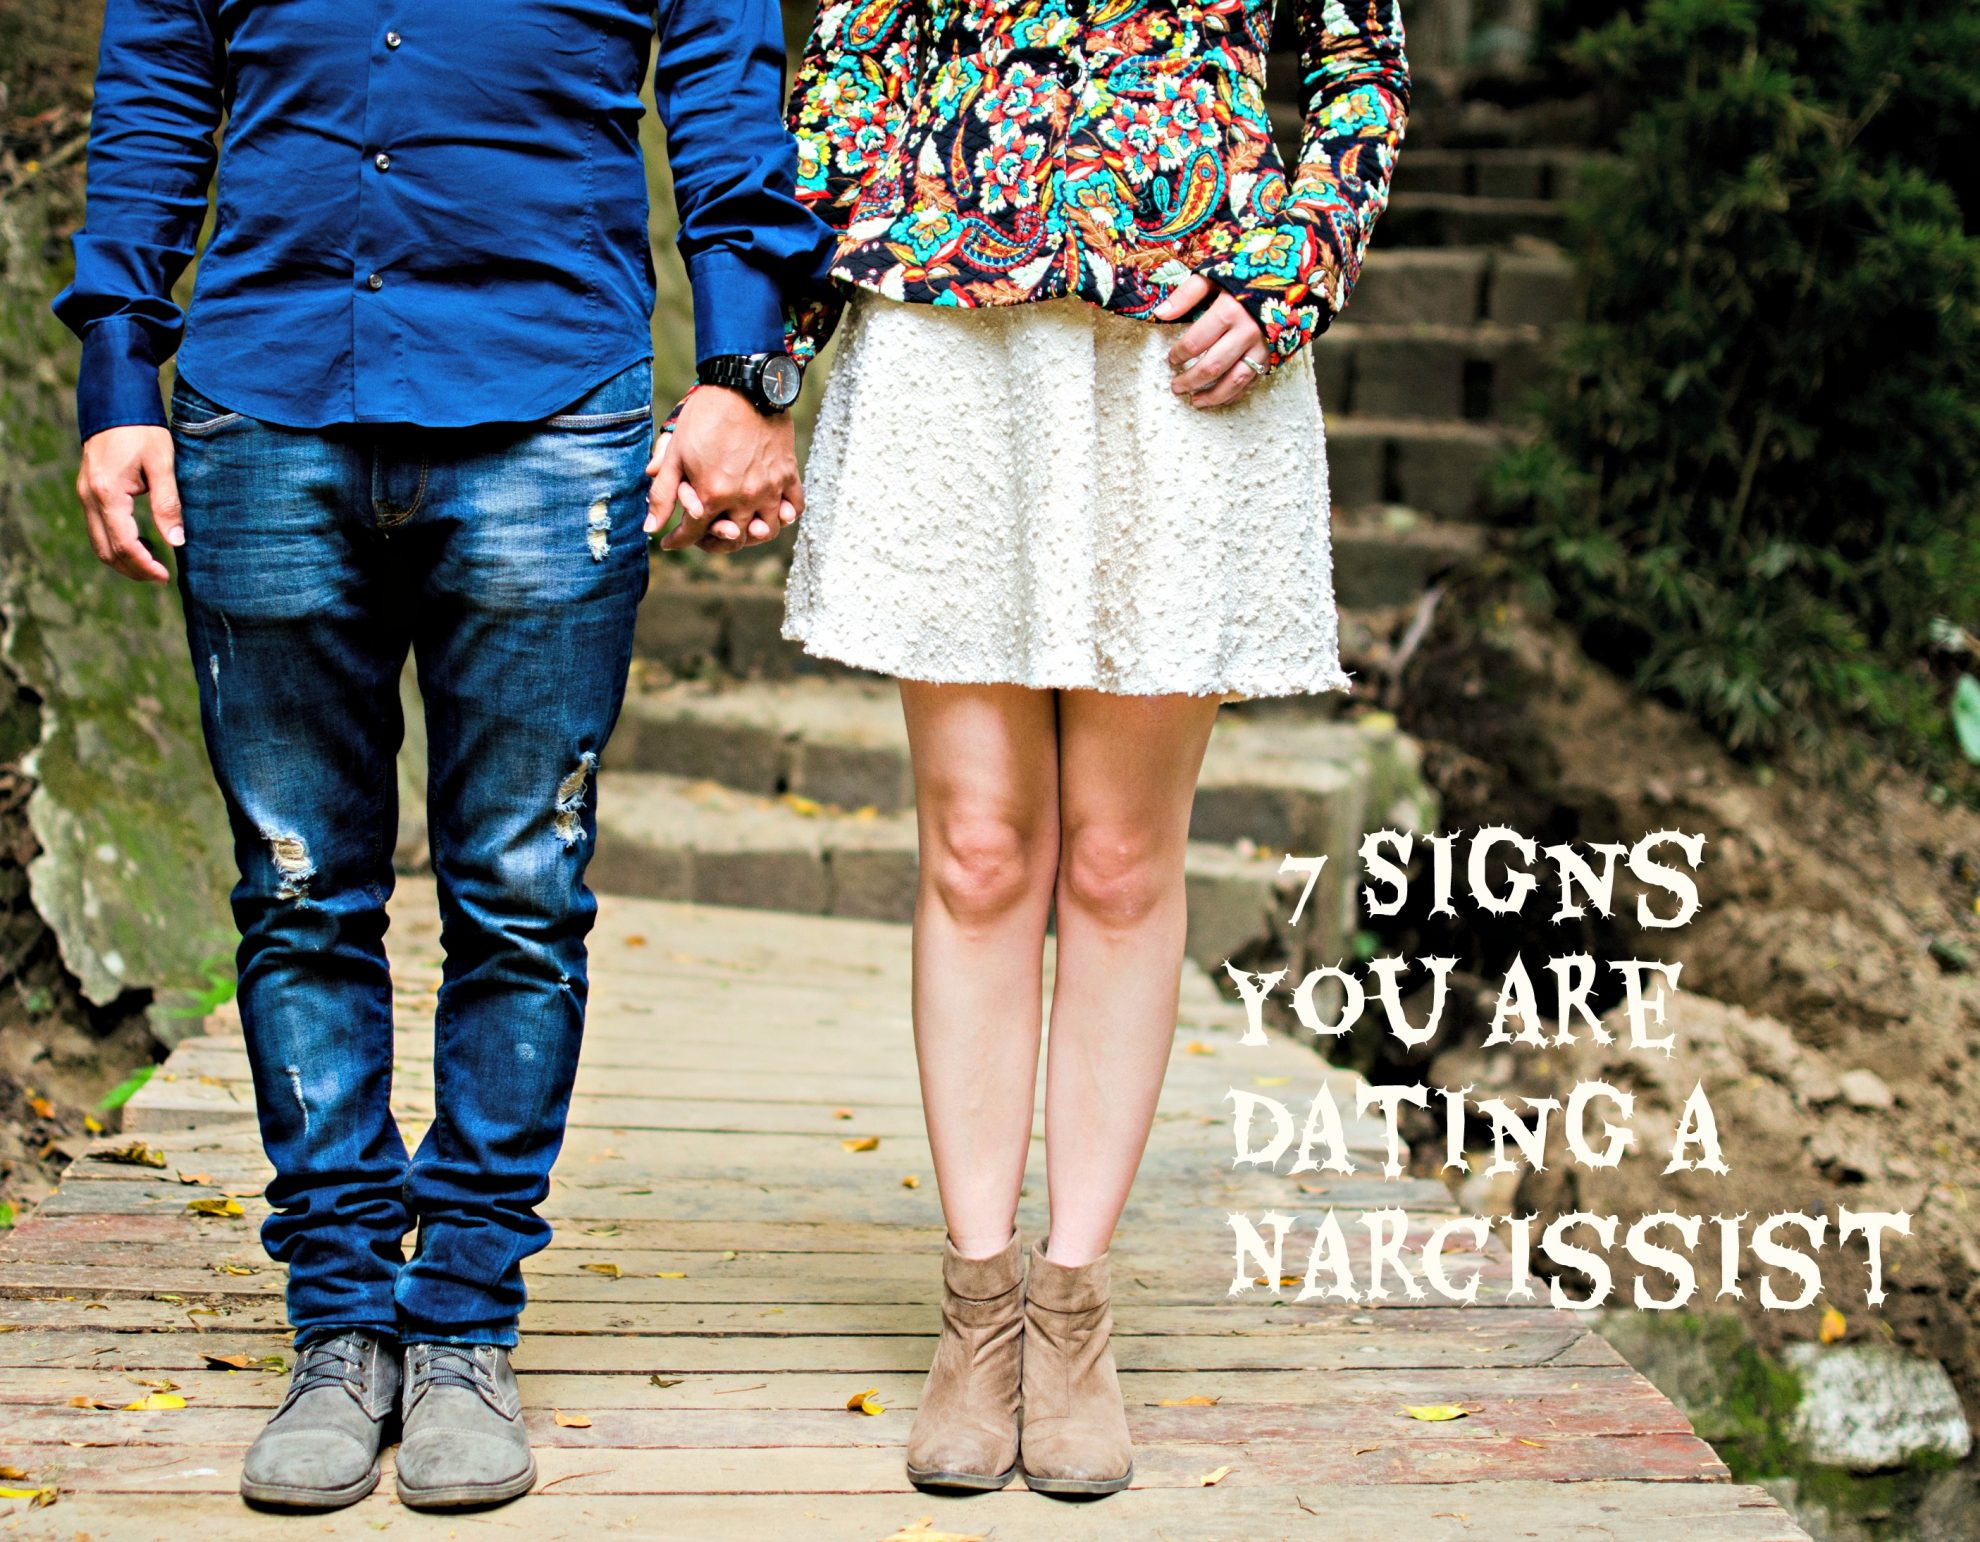 7 Signs You are Dating a Narcissist - The Staten Island family